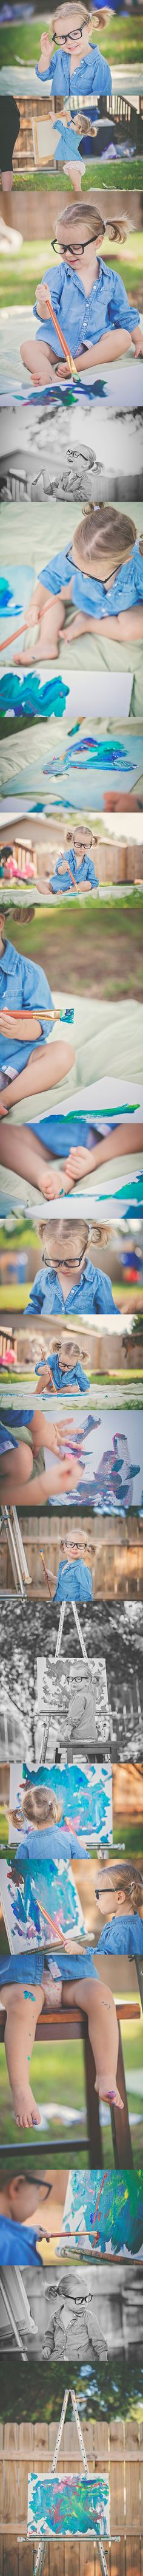 Adorable little artist | Inspiration for 2 Year Session | P&W Photography